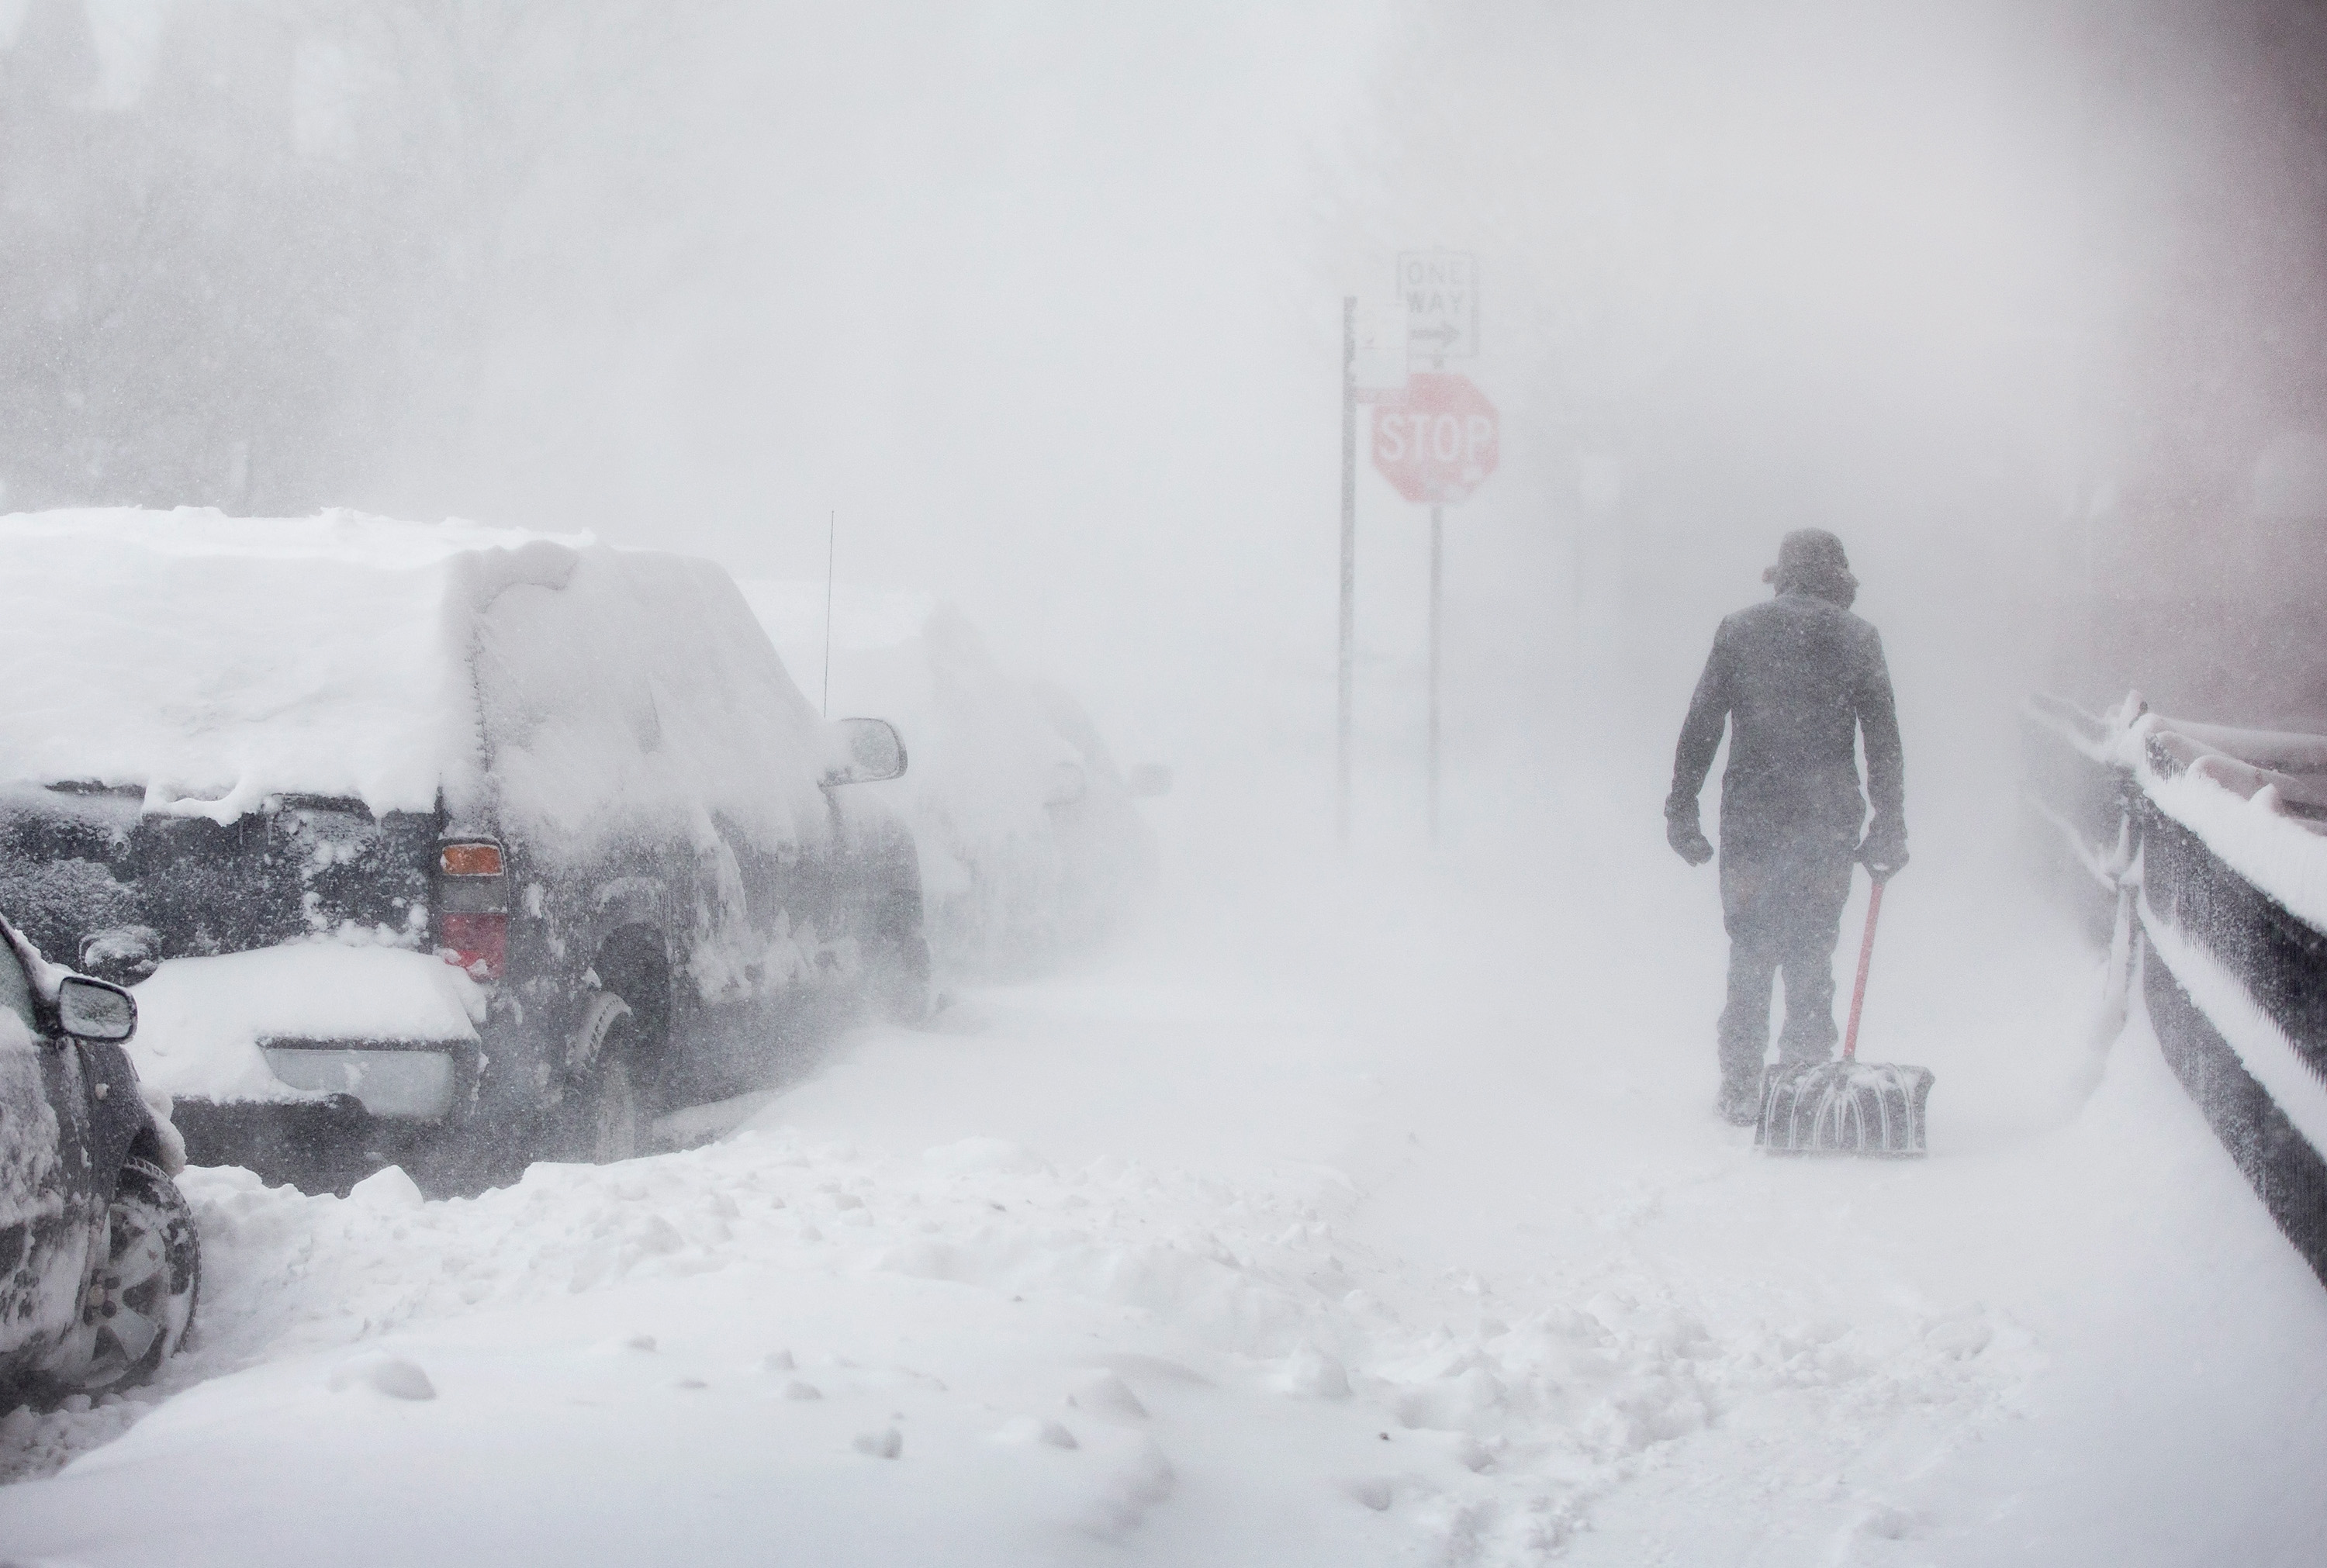 CHICAGO, IL - FEBRUARY 01: A pedestrian navigates a snow-covered sidewalk on February 1, 2015 in Chicago, Illinois. Fifteen inches or more of snow is expected to fall on the city before Monday morning. The snow has caused power outages and forced about 2,000 flight cancelations at the city's airports.  (Photo by Scott Olson/Getty Images)